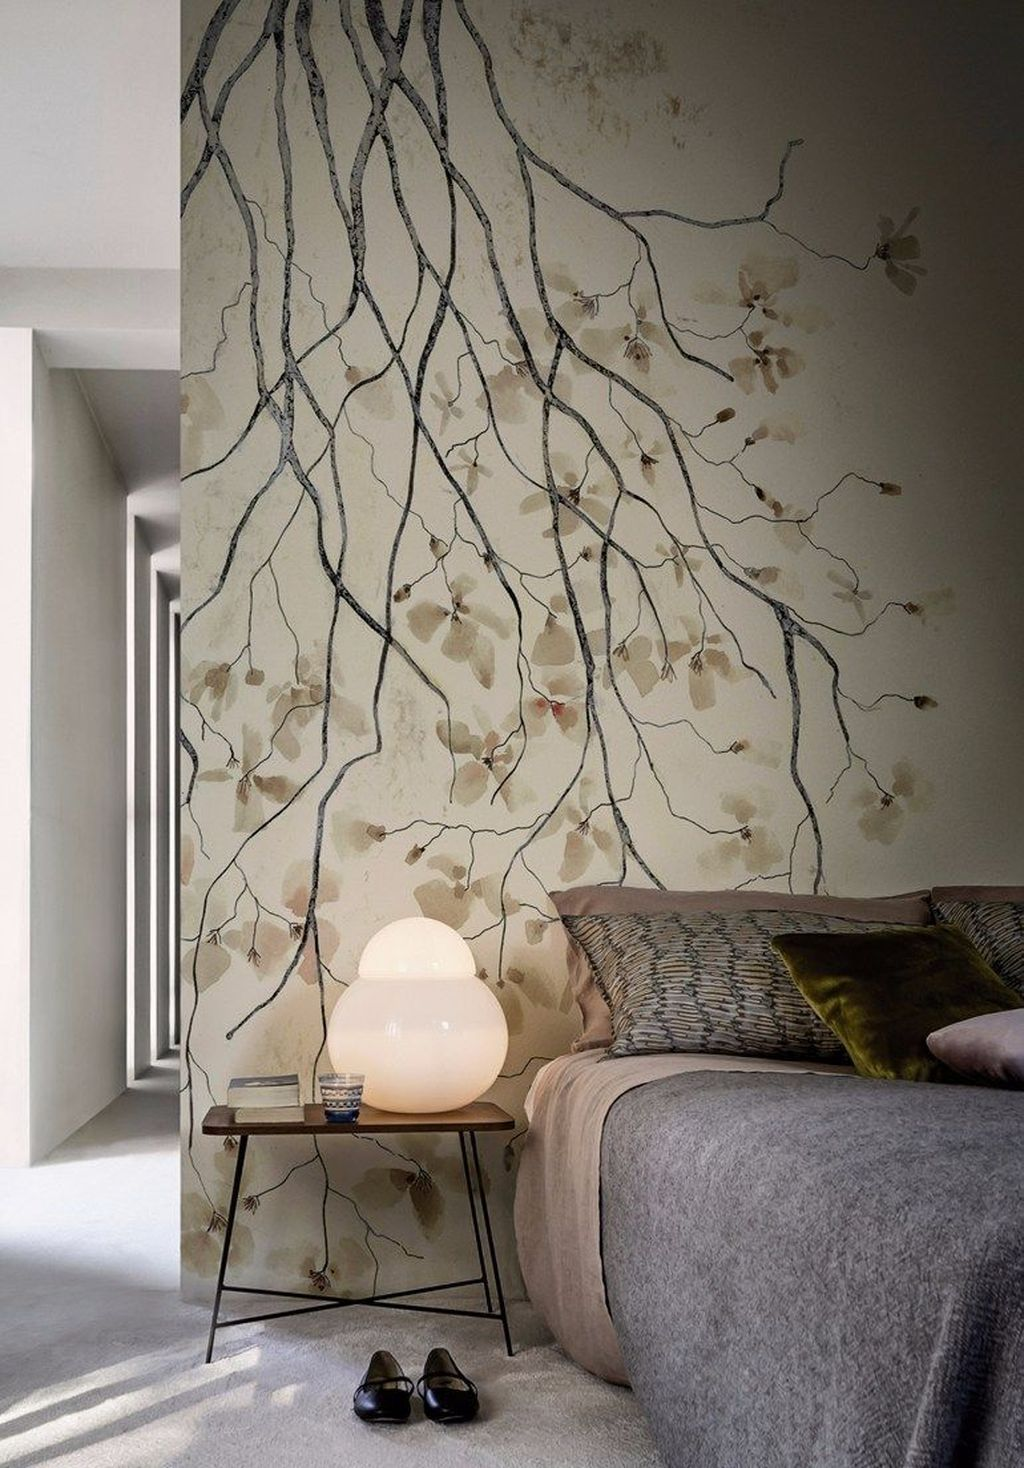 inspiring wall wallpaper design ideas to decorate your home also rh pinterest